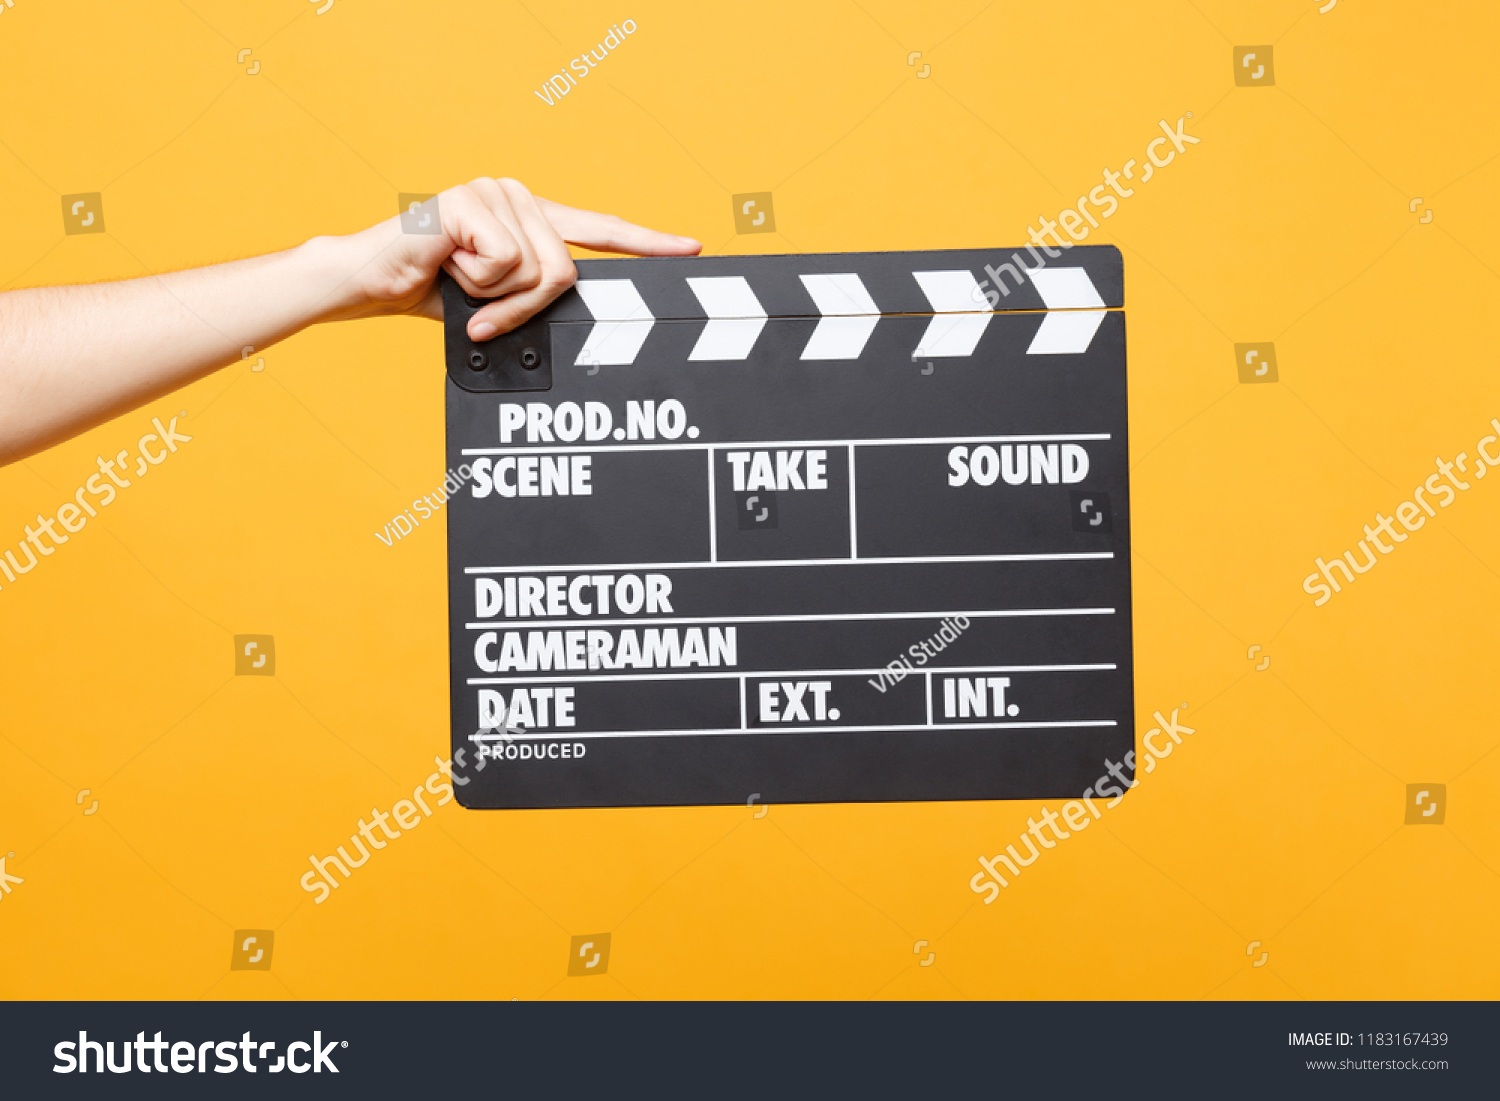 Close up female holding in hand classic director clear empty black film making clapperboard isolated on yellow orange background. Cinematography production concept. Copy space for advertising #1183167439